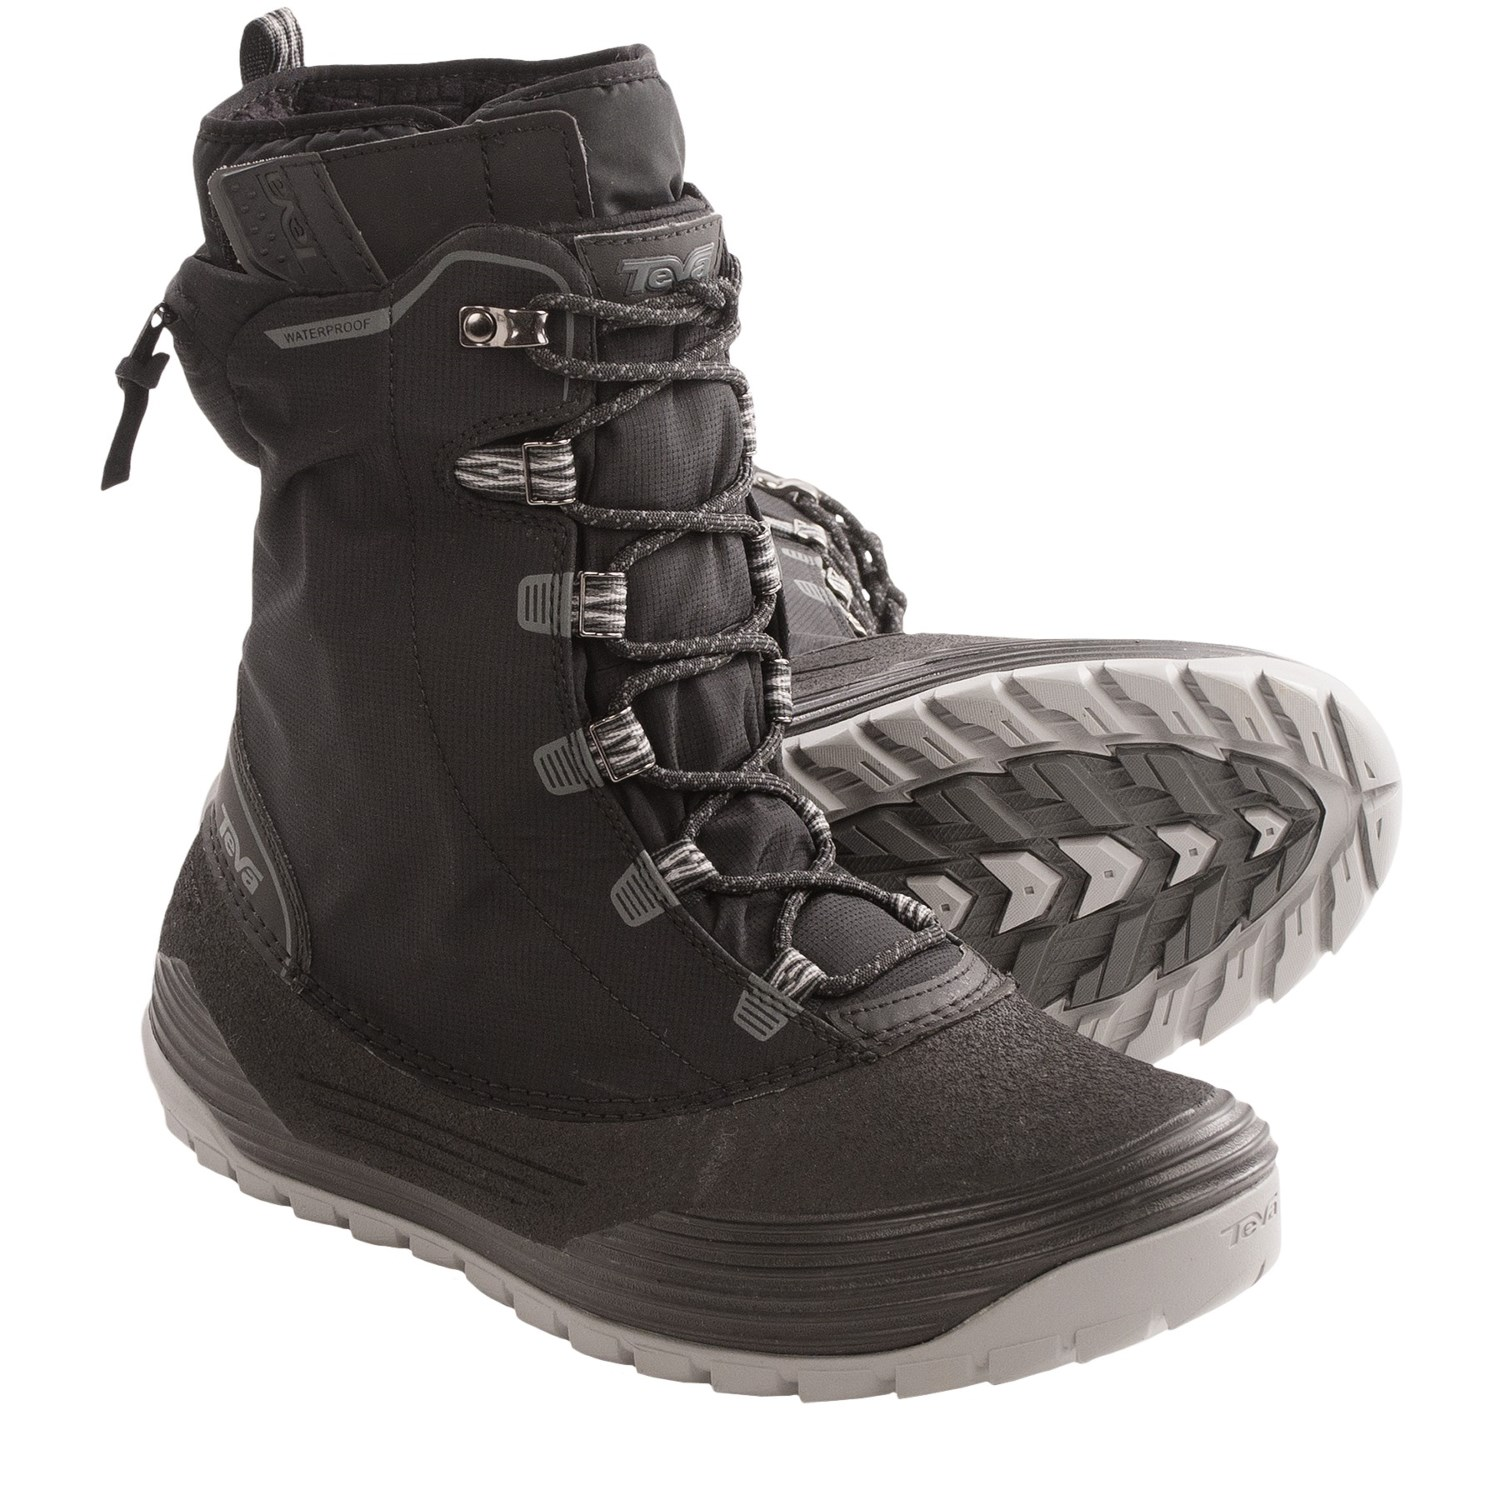 Men;s Winter Boots 13 Wide | Santa Barbara Institute for ...